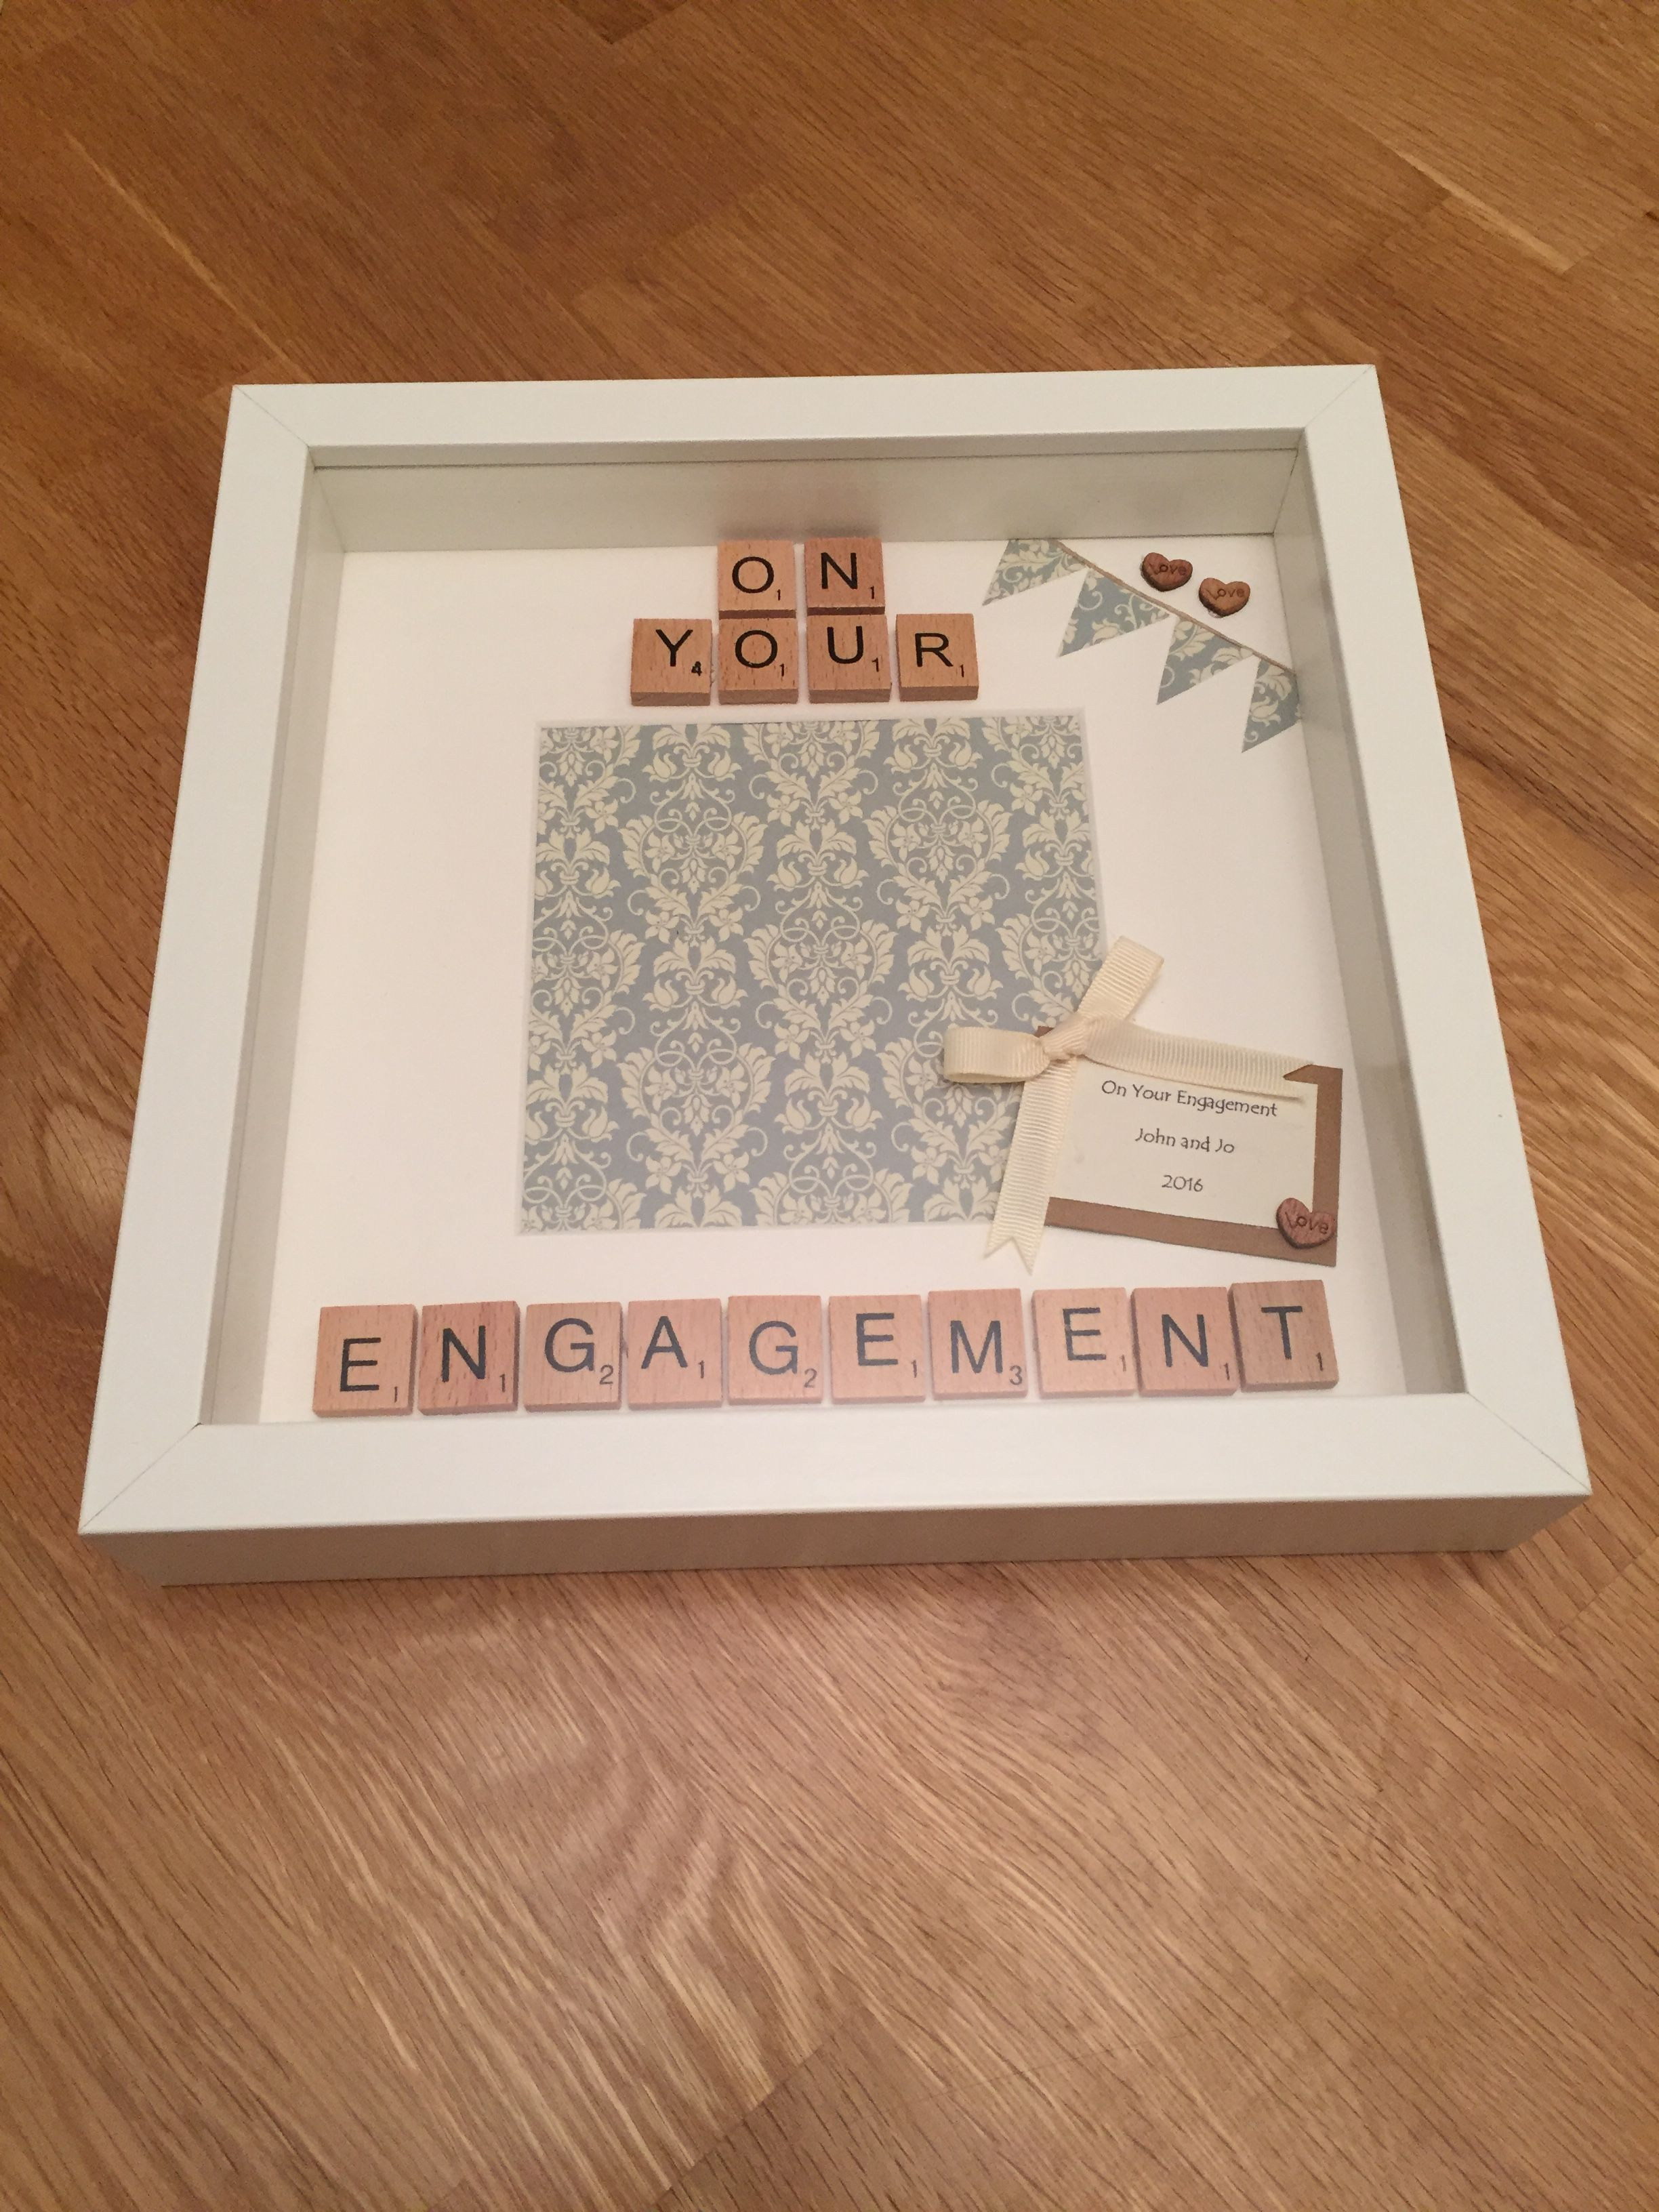 On Your Engagement - personalised scrabble frame handmade https://m ...